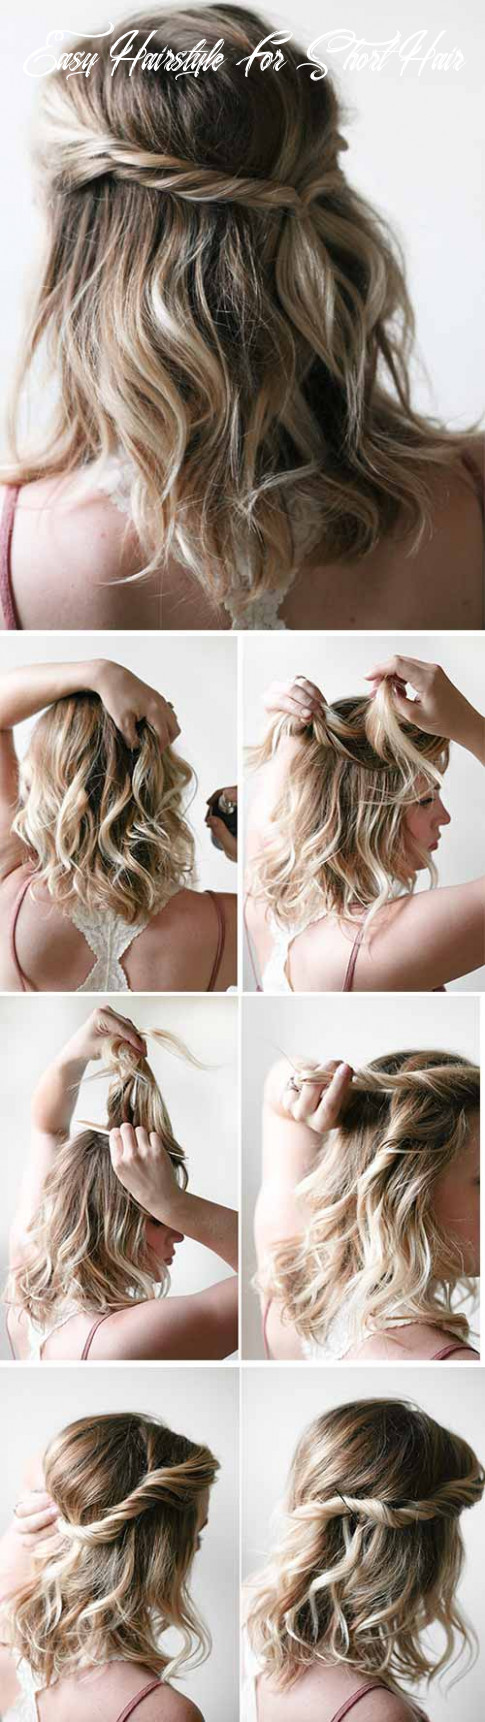 8 incredible diy short hairstyles a step by step guide easy hairstyle for short hair